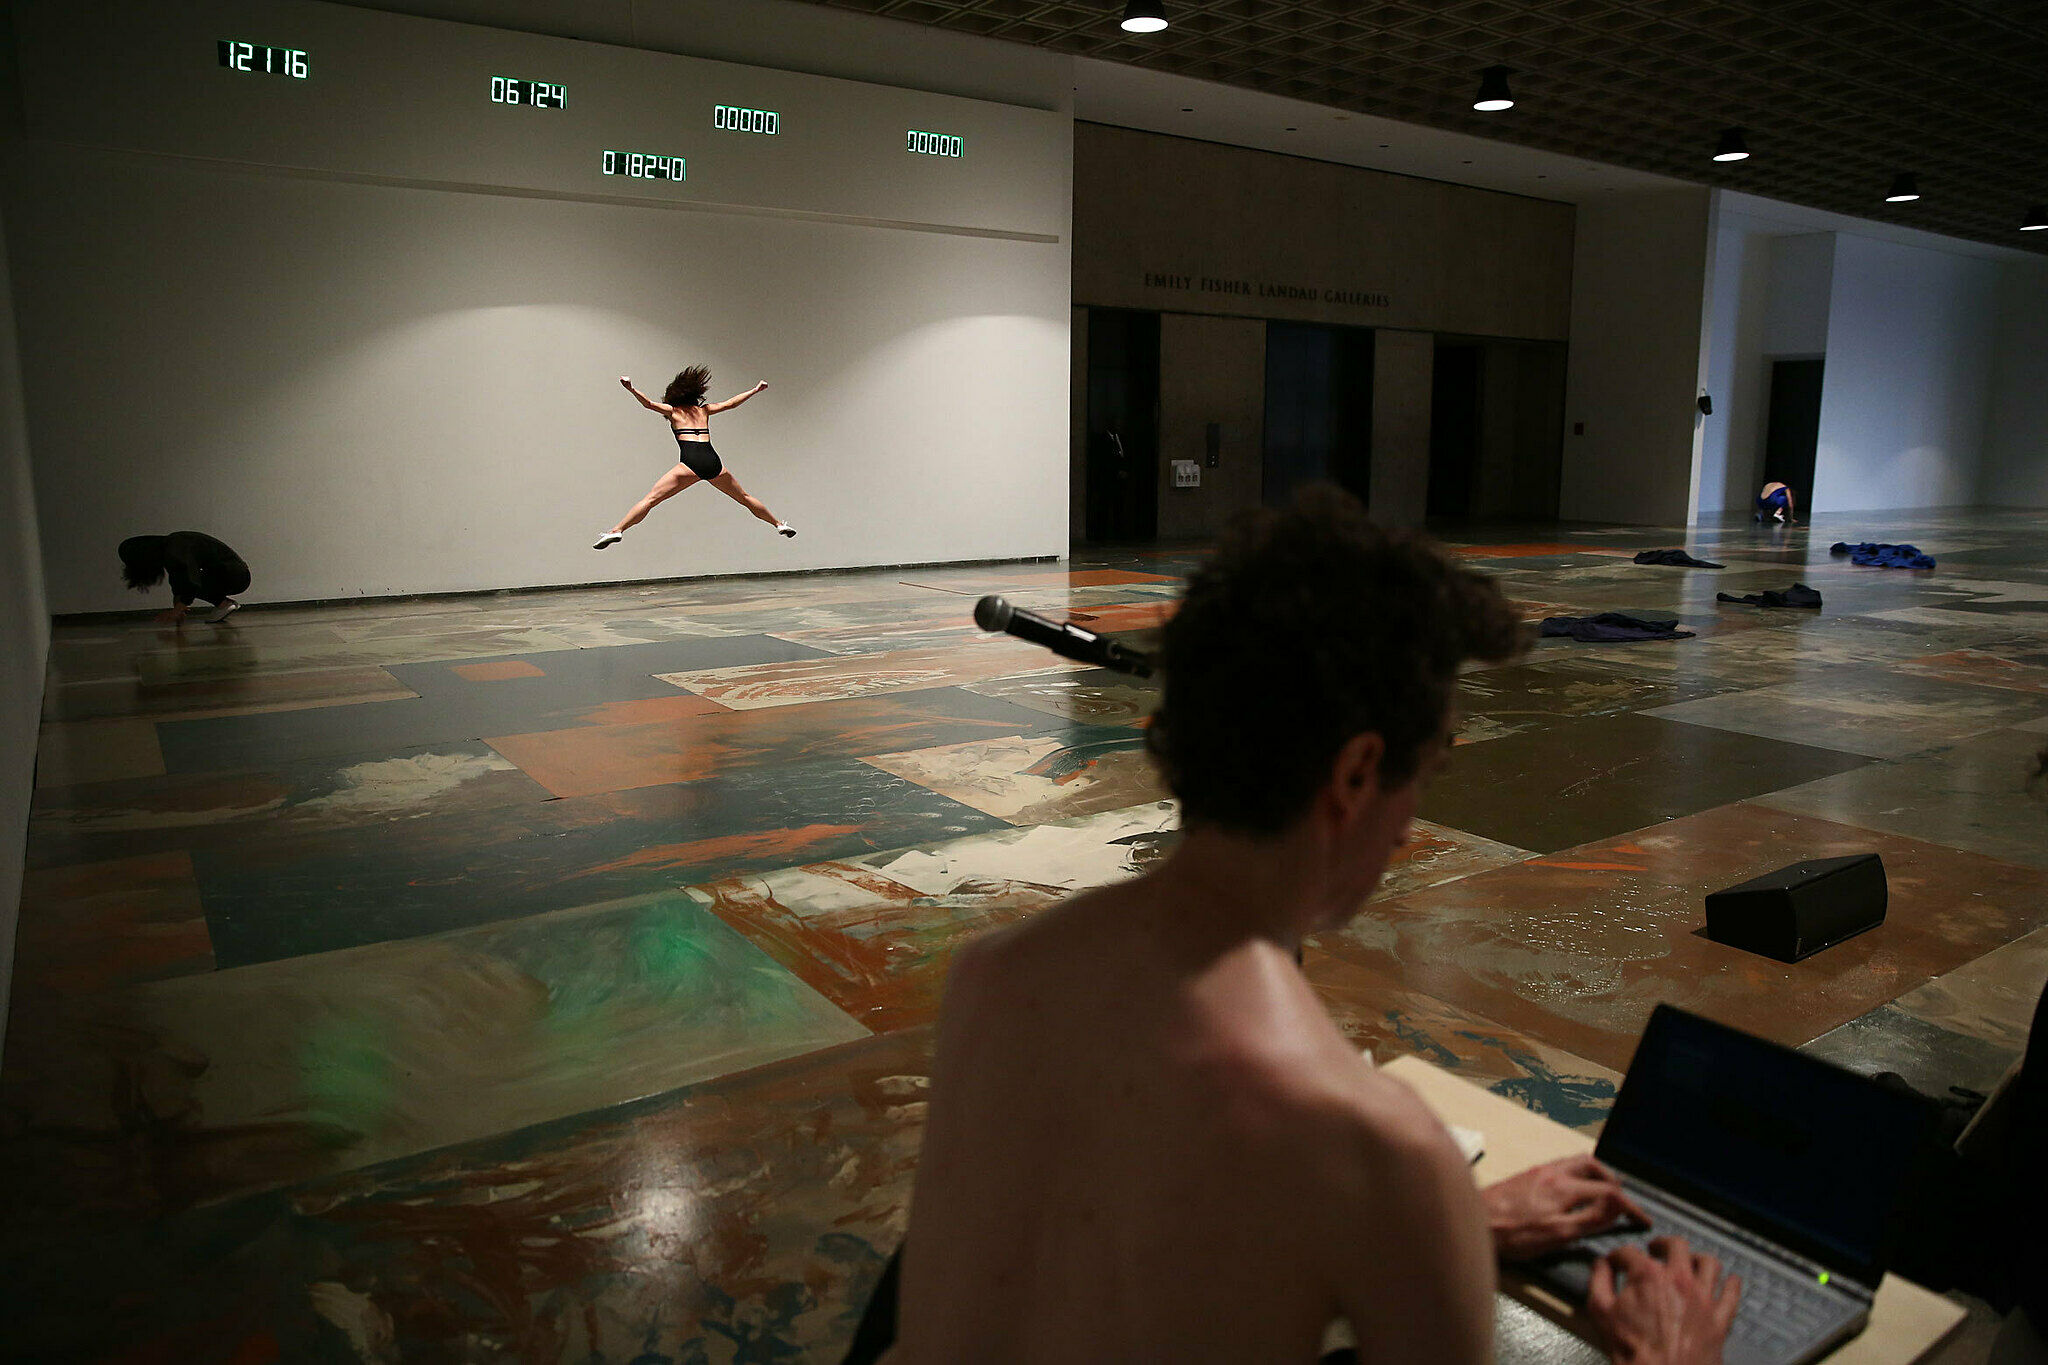 A dancer jumps in the background while a man sits in front of a laptop in a gallery.